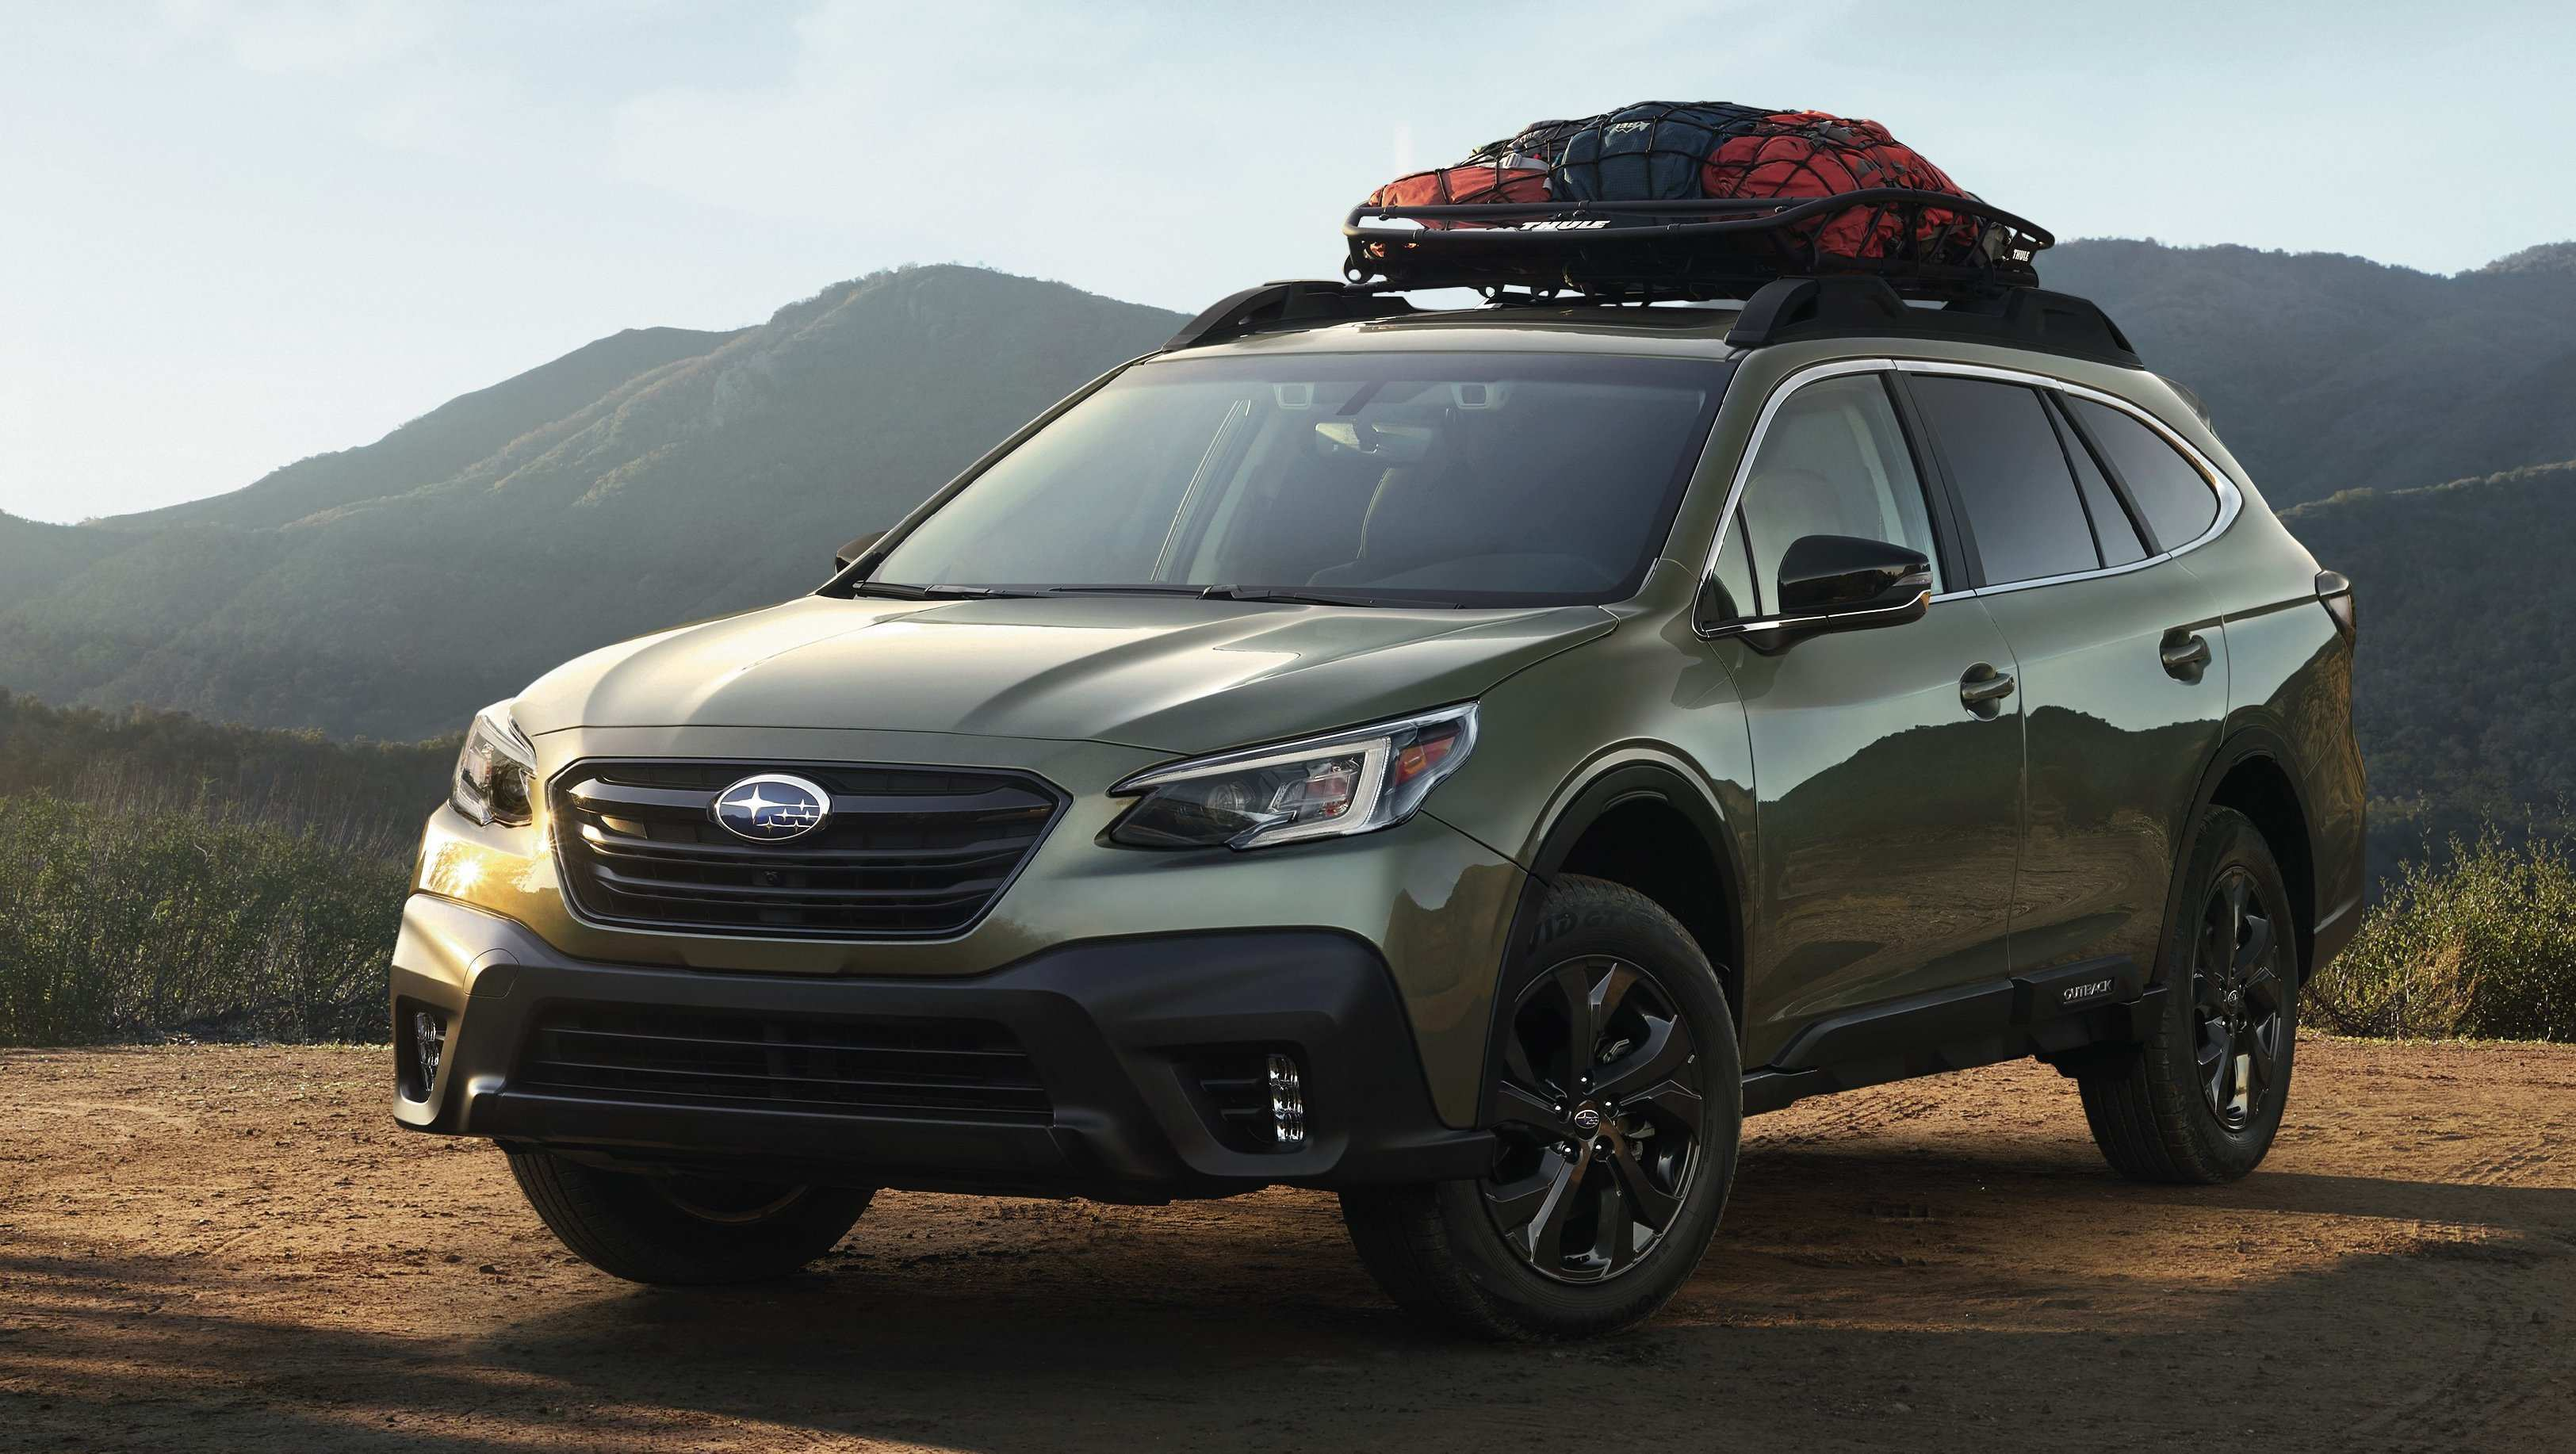 21 A Subaru Outback Update 2020 Performance And New Engine